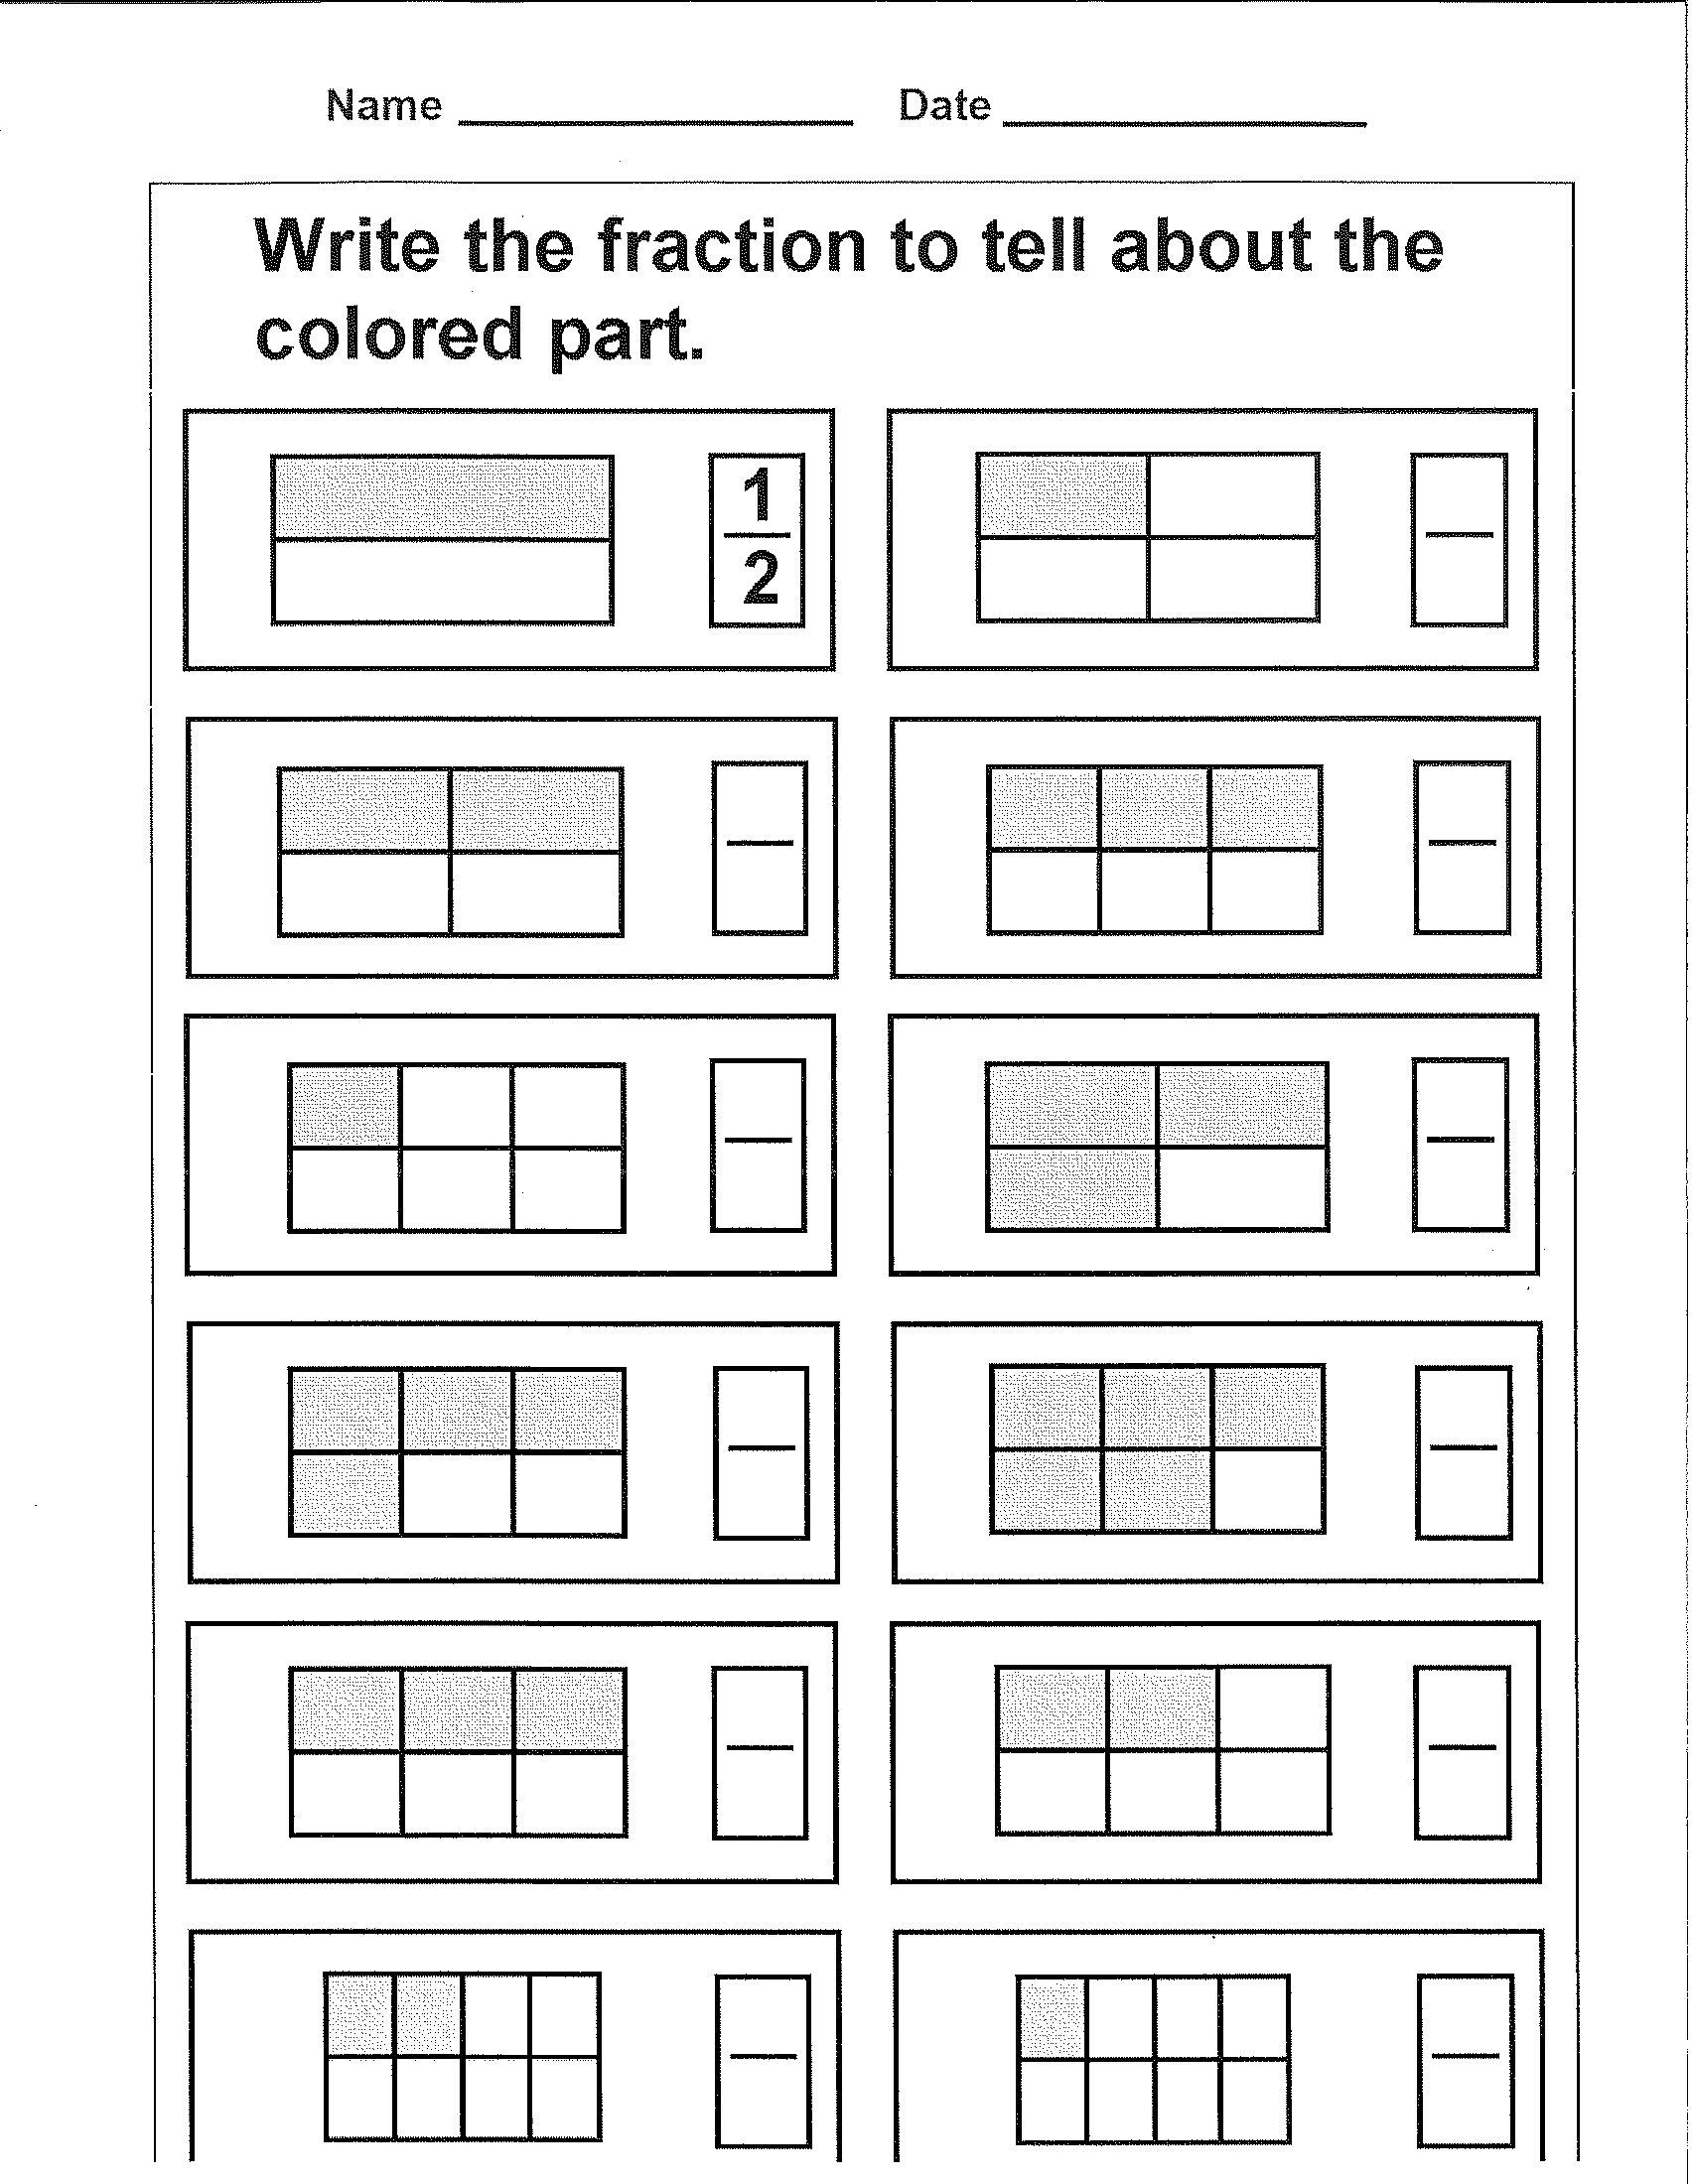 Write the fraction to tell about the colored part